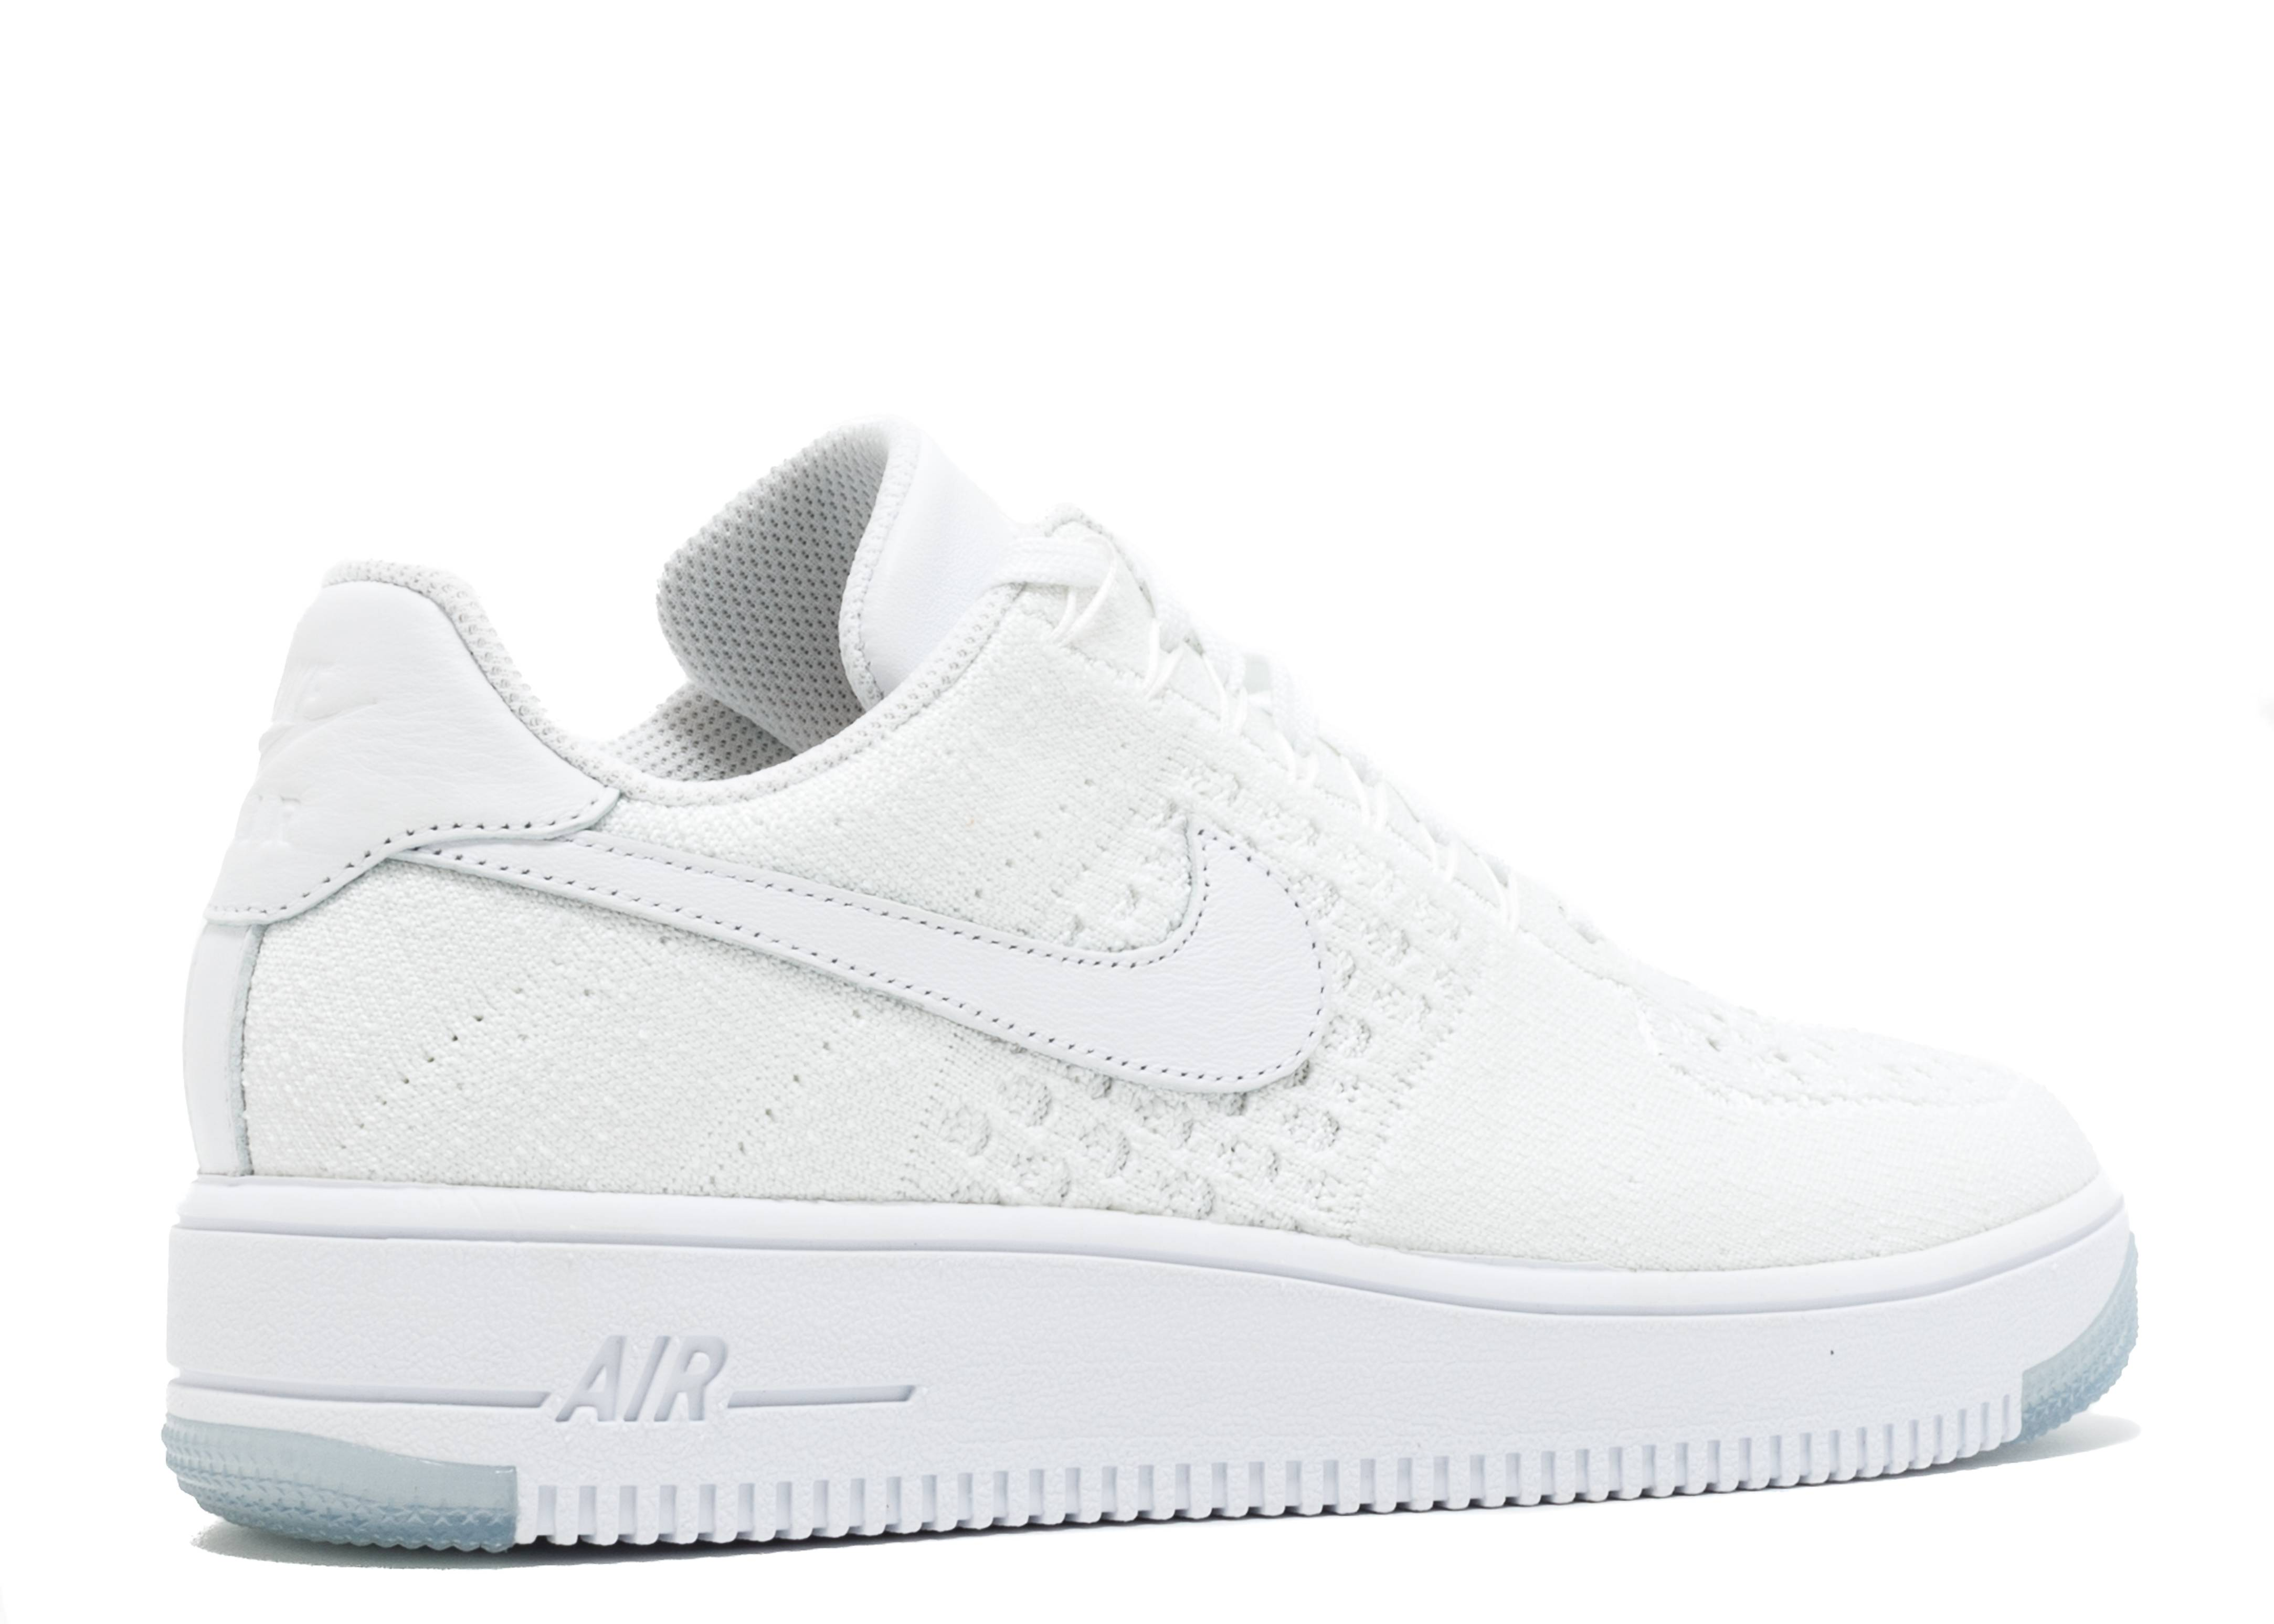 e5c5d975ad0 W Air Force 1 Flyknit Low - Nike - 820256 101 - white white